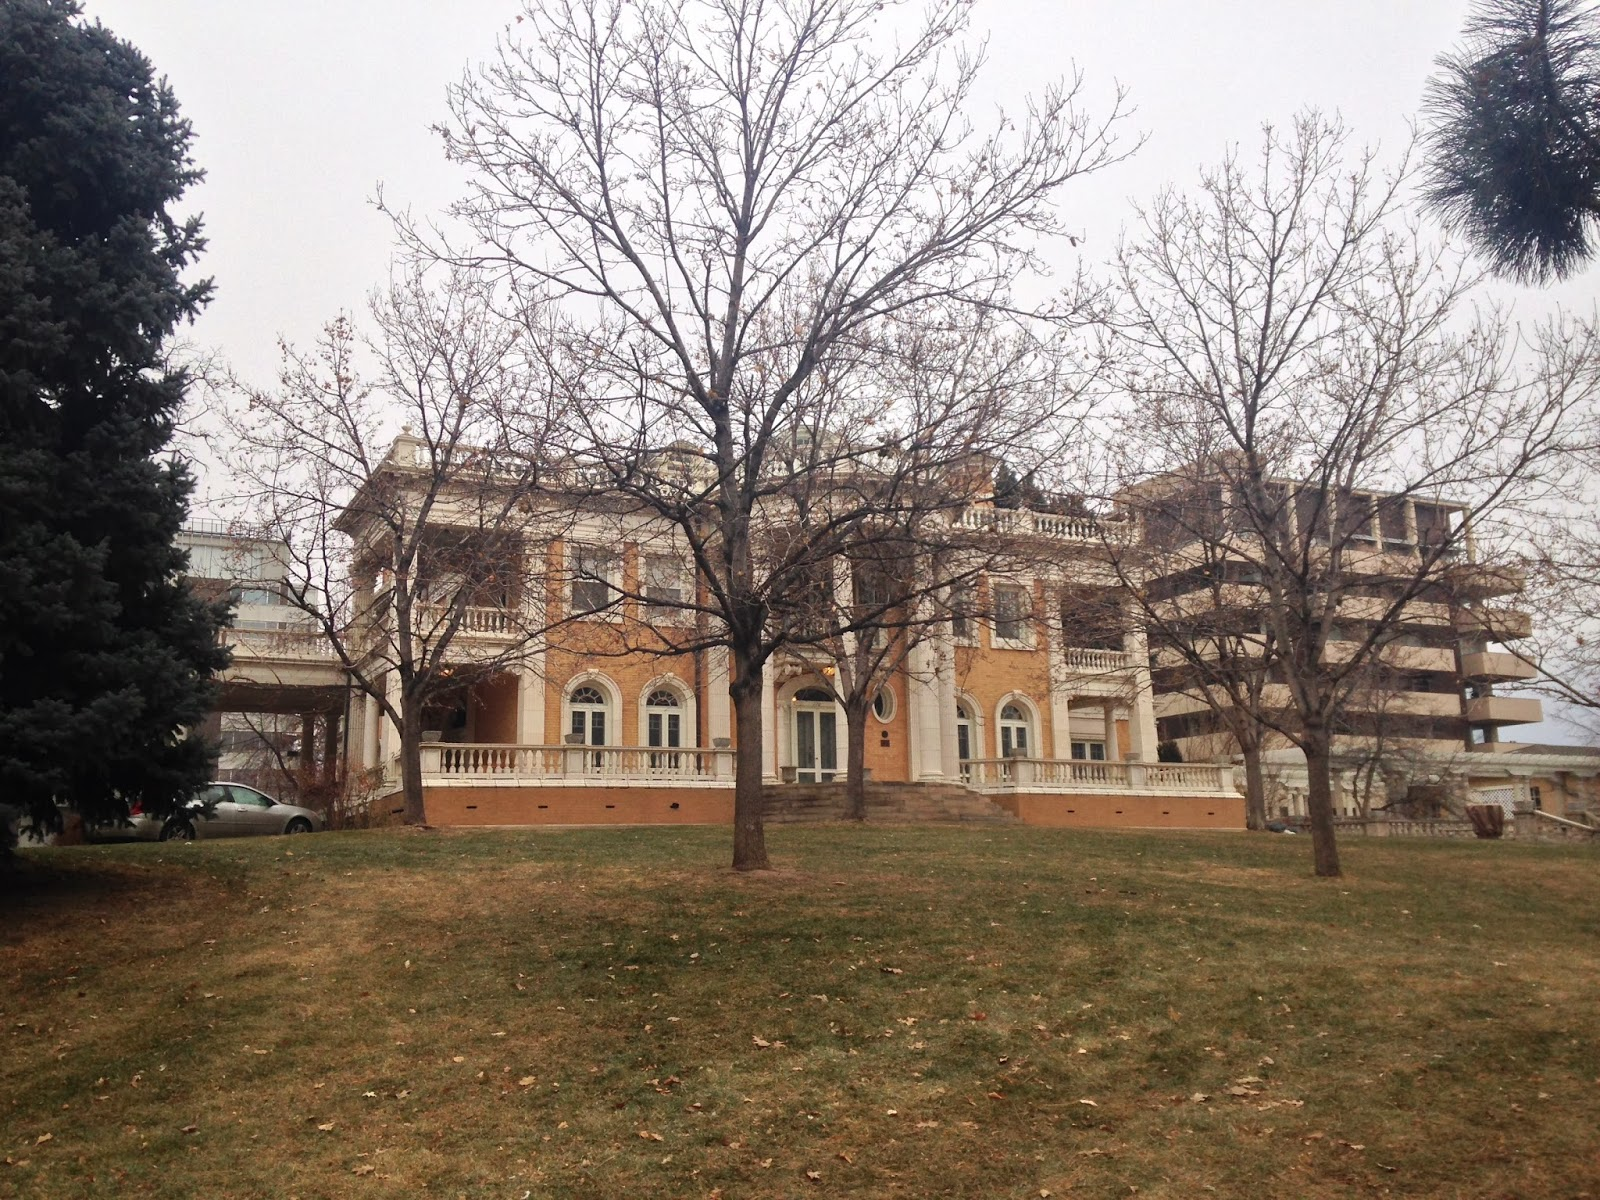 Grant-Humphreys Mansion